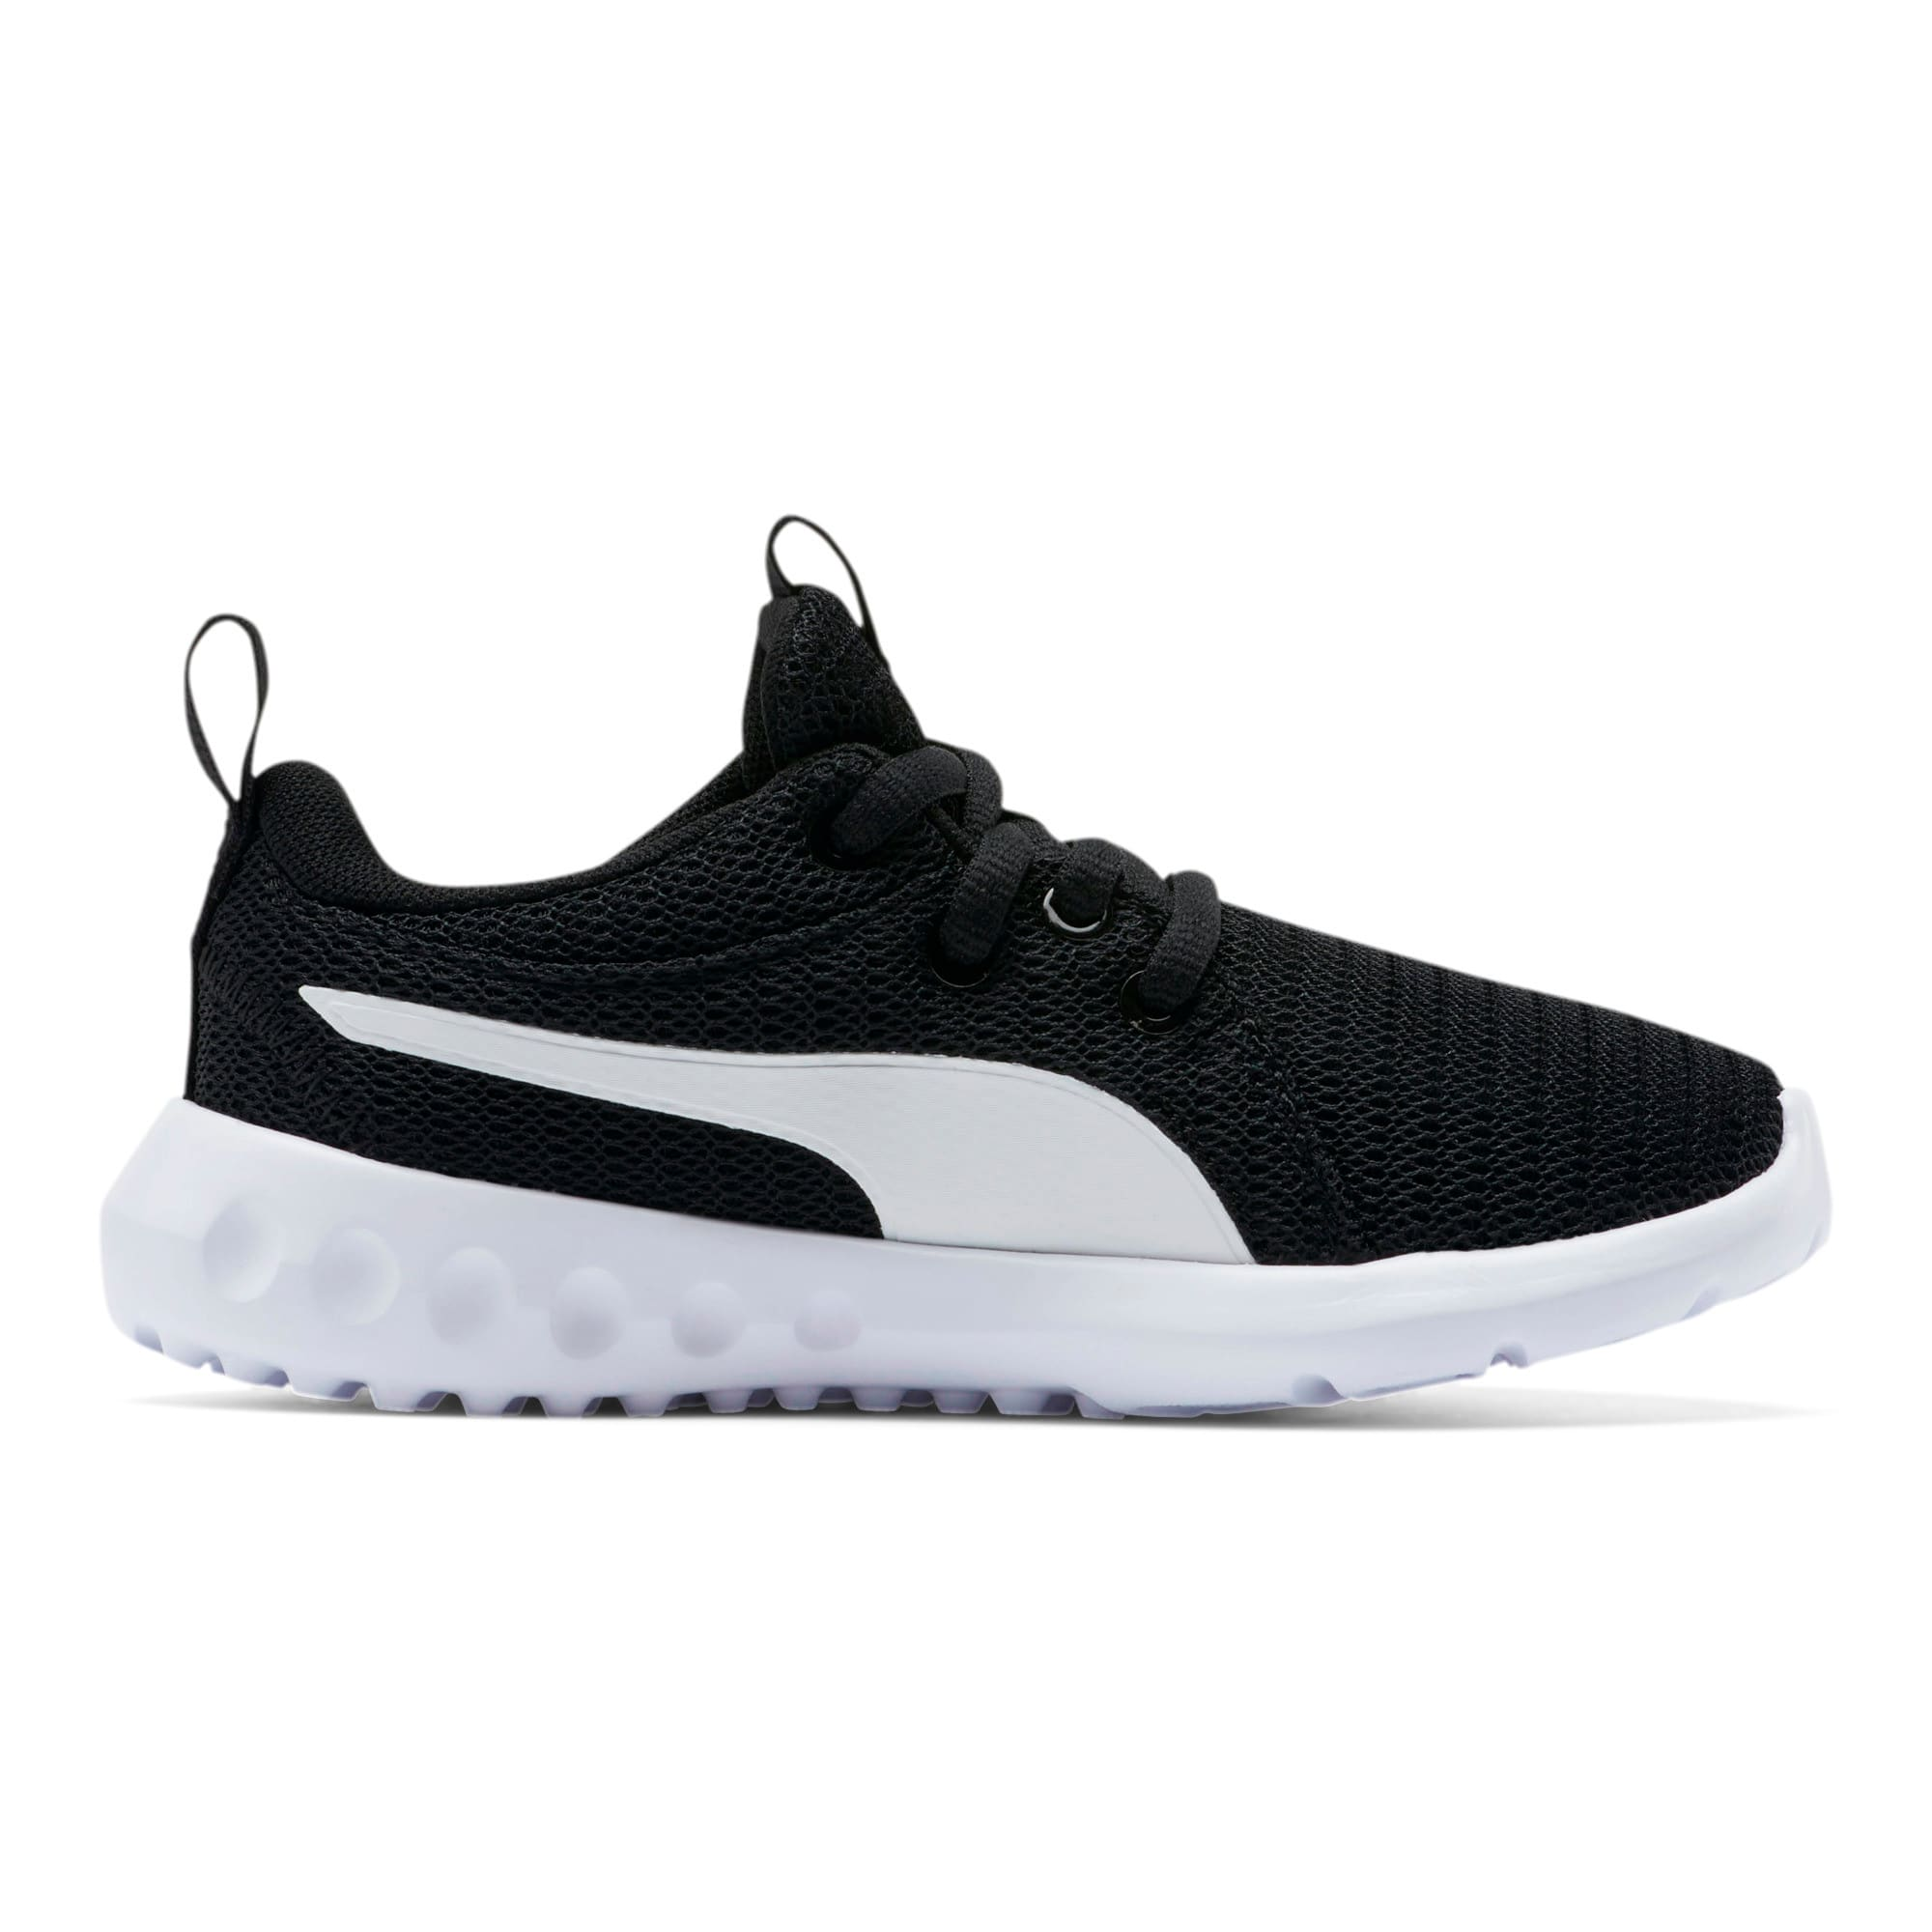 Thumbnail 5 of Carson 2 AC Little Kids' Shoes, Puma Black-Puma White, medium